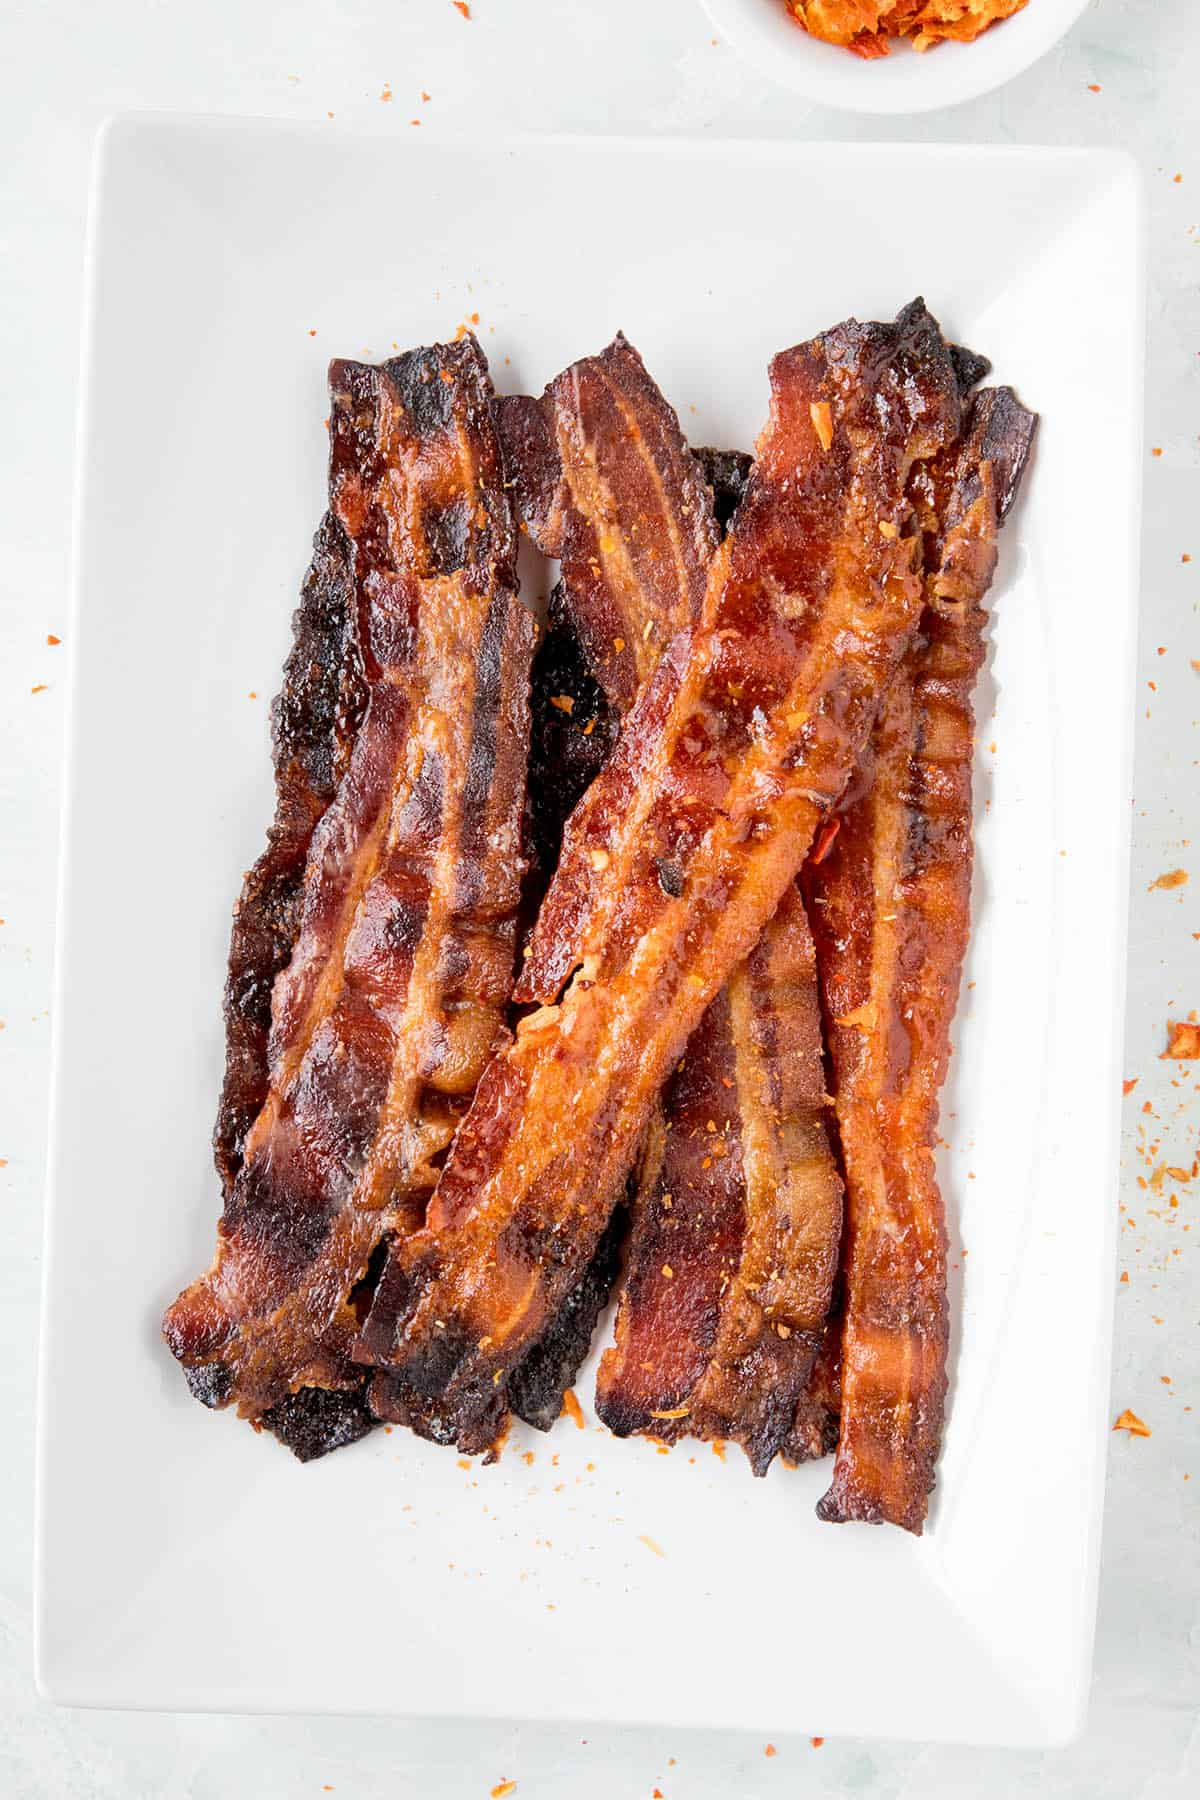 Ghost Pepper Candied Bacon - On a plate